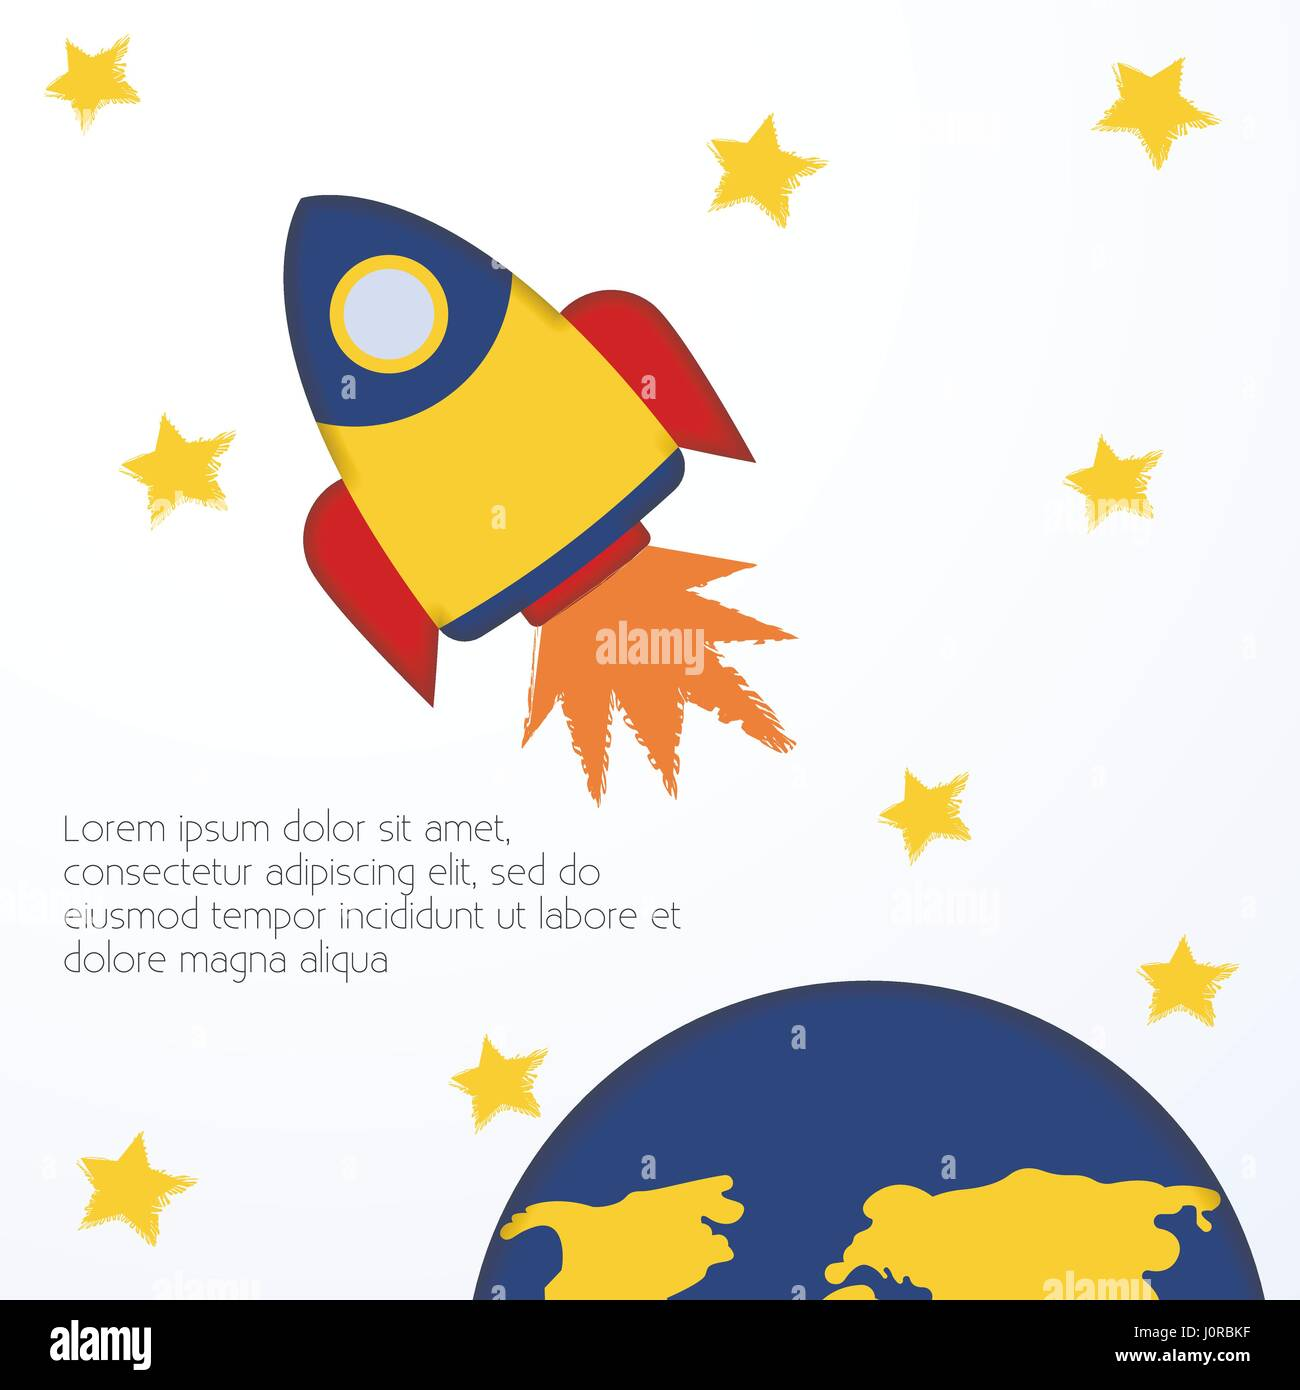 Spacecraft Vector Illustration Postcard Template Flying Yellow Rocket Among  Stars On White Background Cute Design In Children's Drawing Style